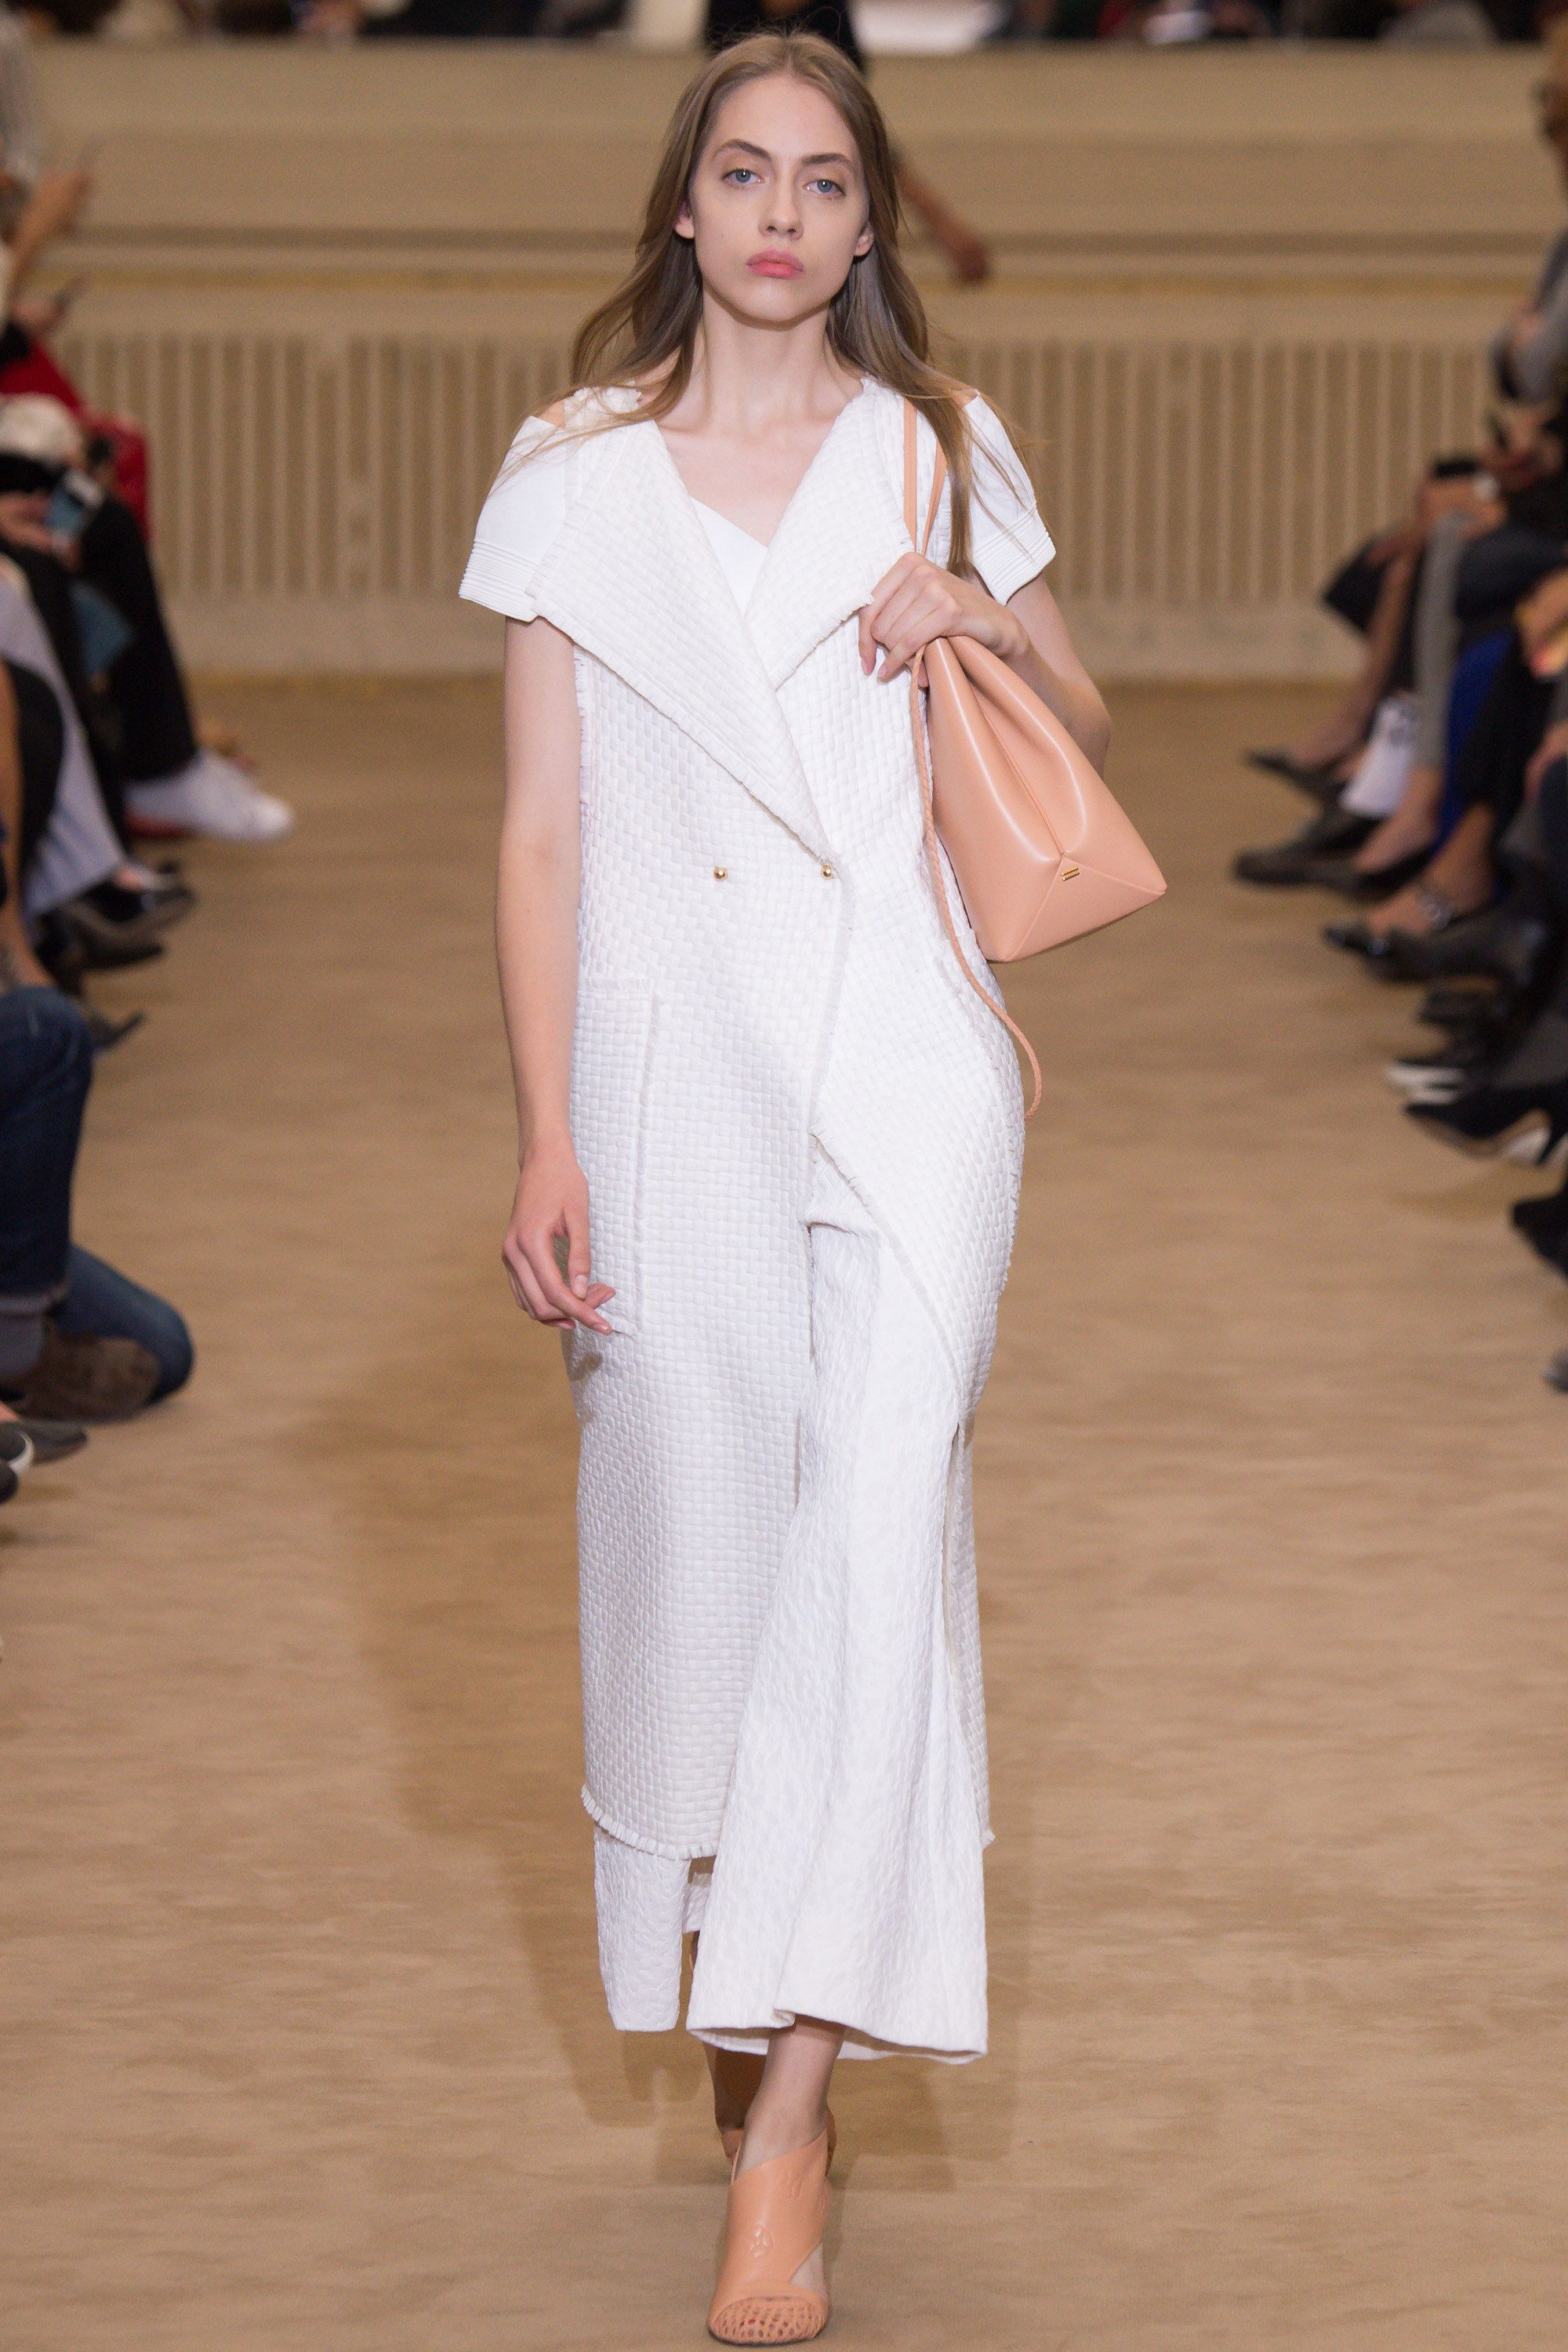 Roland Mouret Spring 2016 Ready-to-Wear Fashion Show - Odette Pavlova (Next)